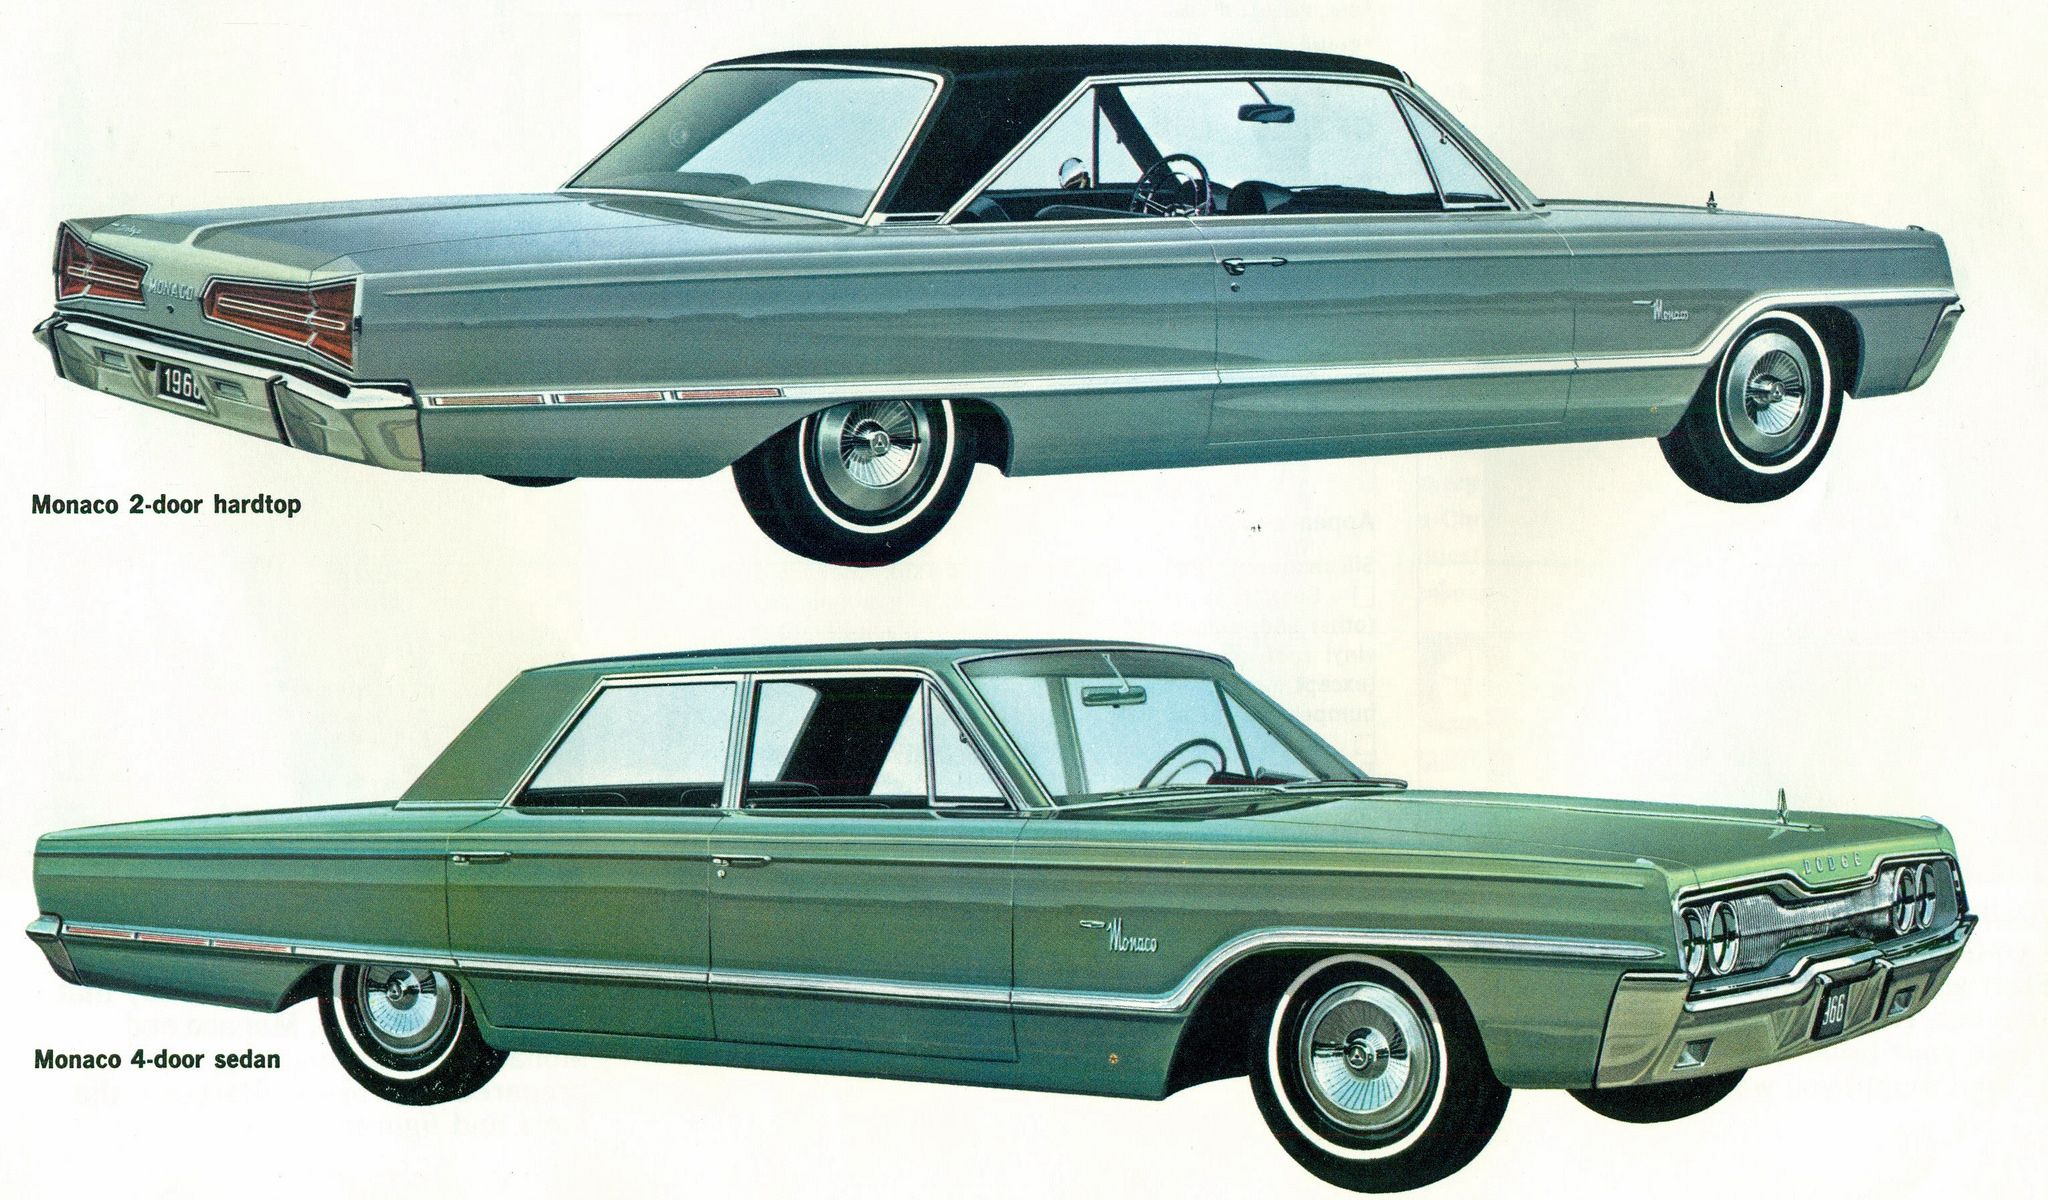 1966 dodge monaco 2 door hardtop and 4 door sedan sedans. Black Bedroom Furniture Sets. Home Design Ideas